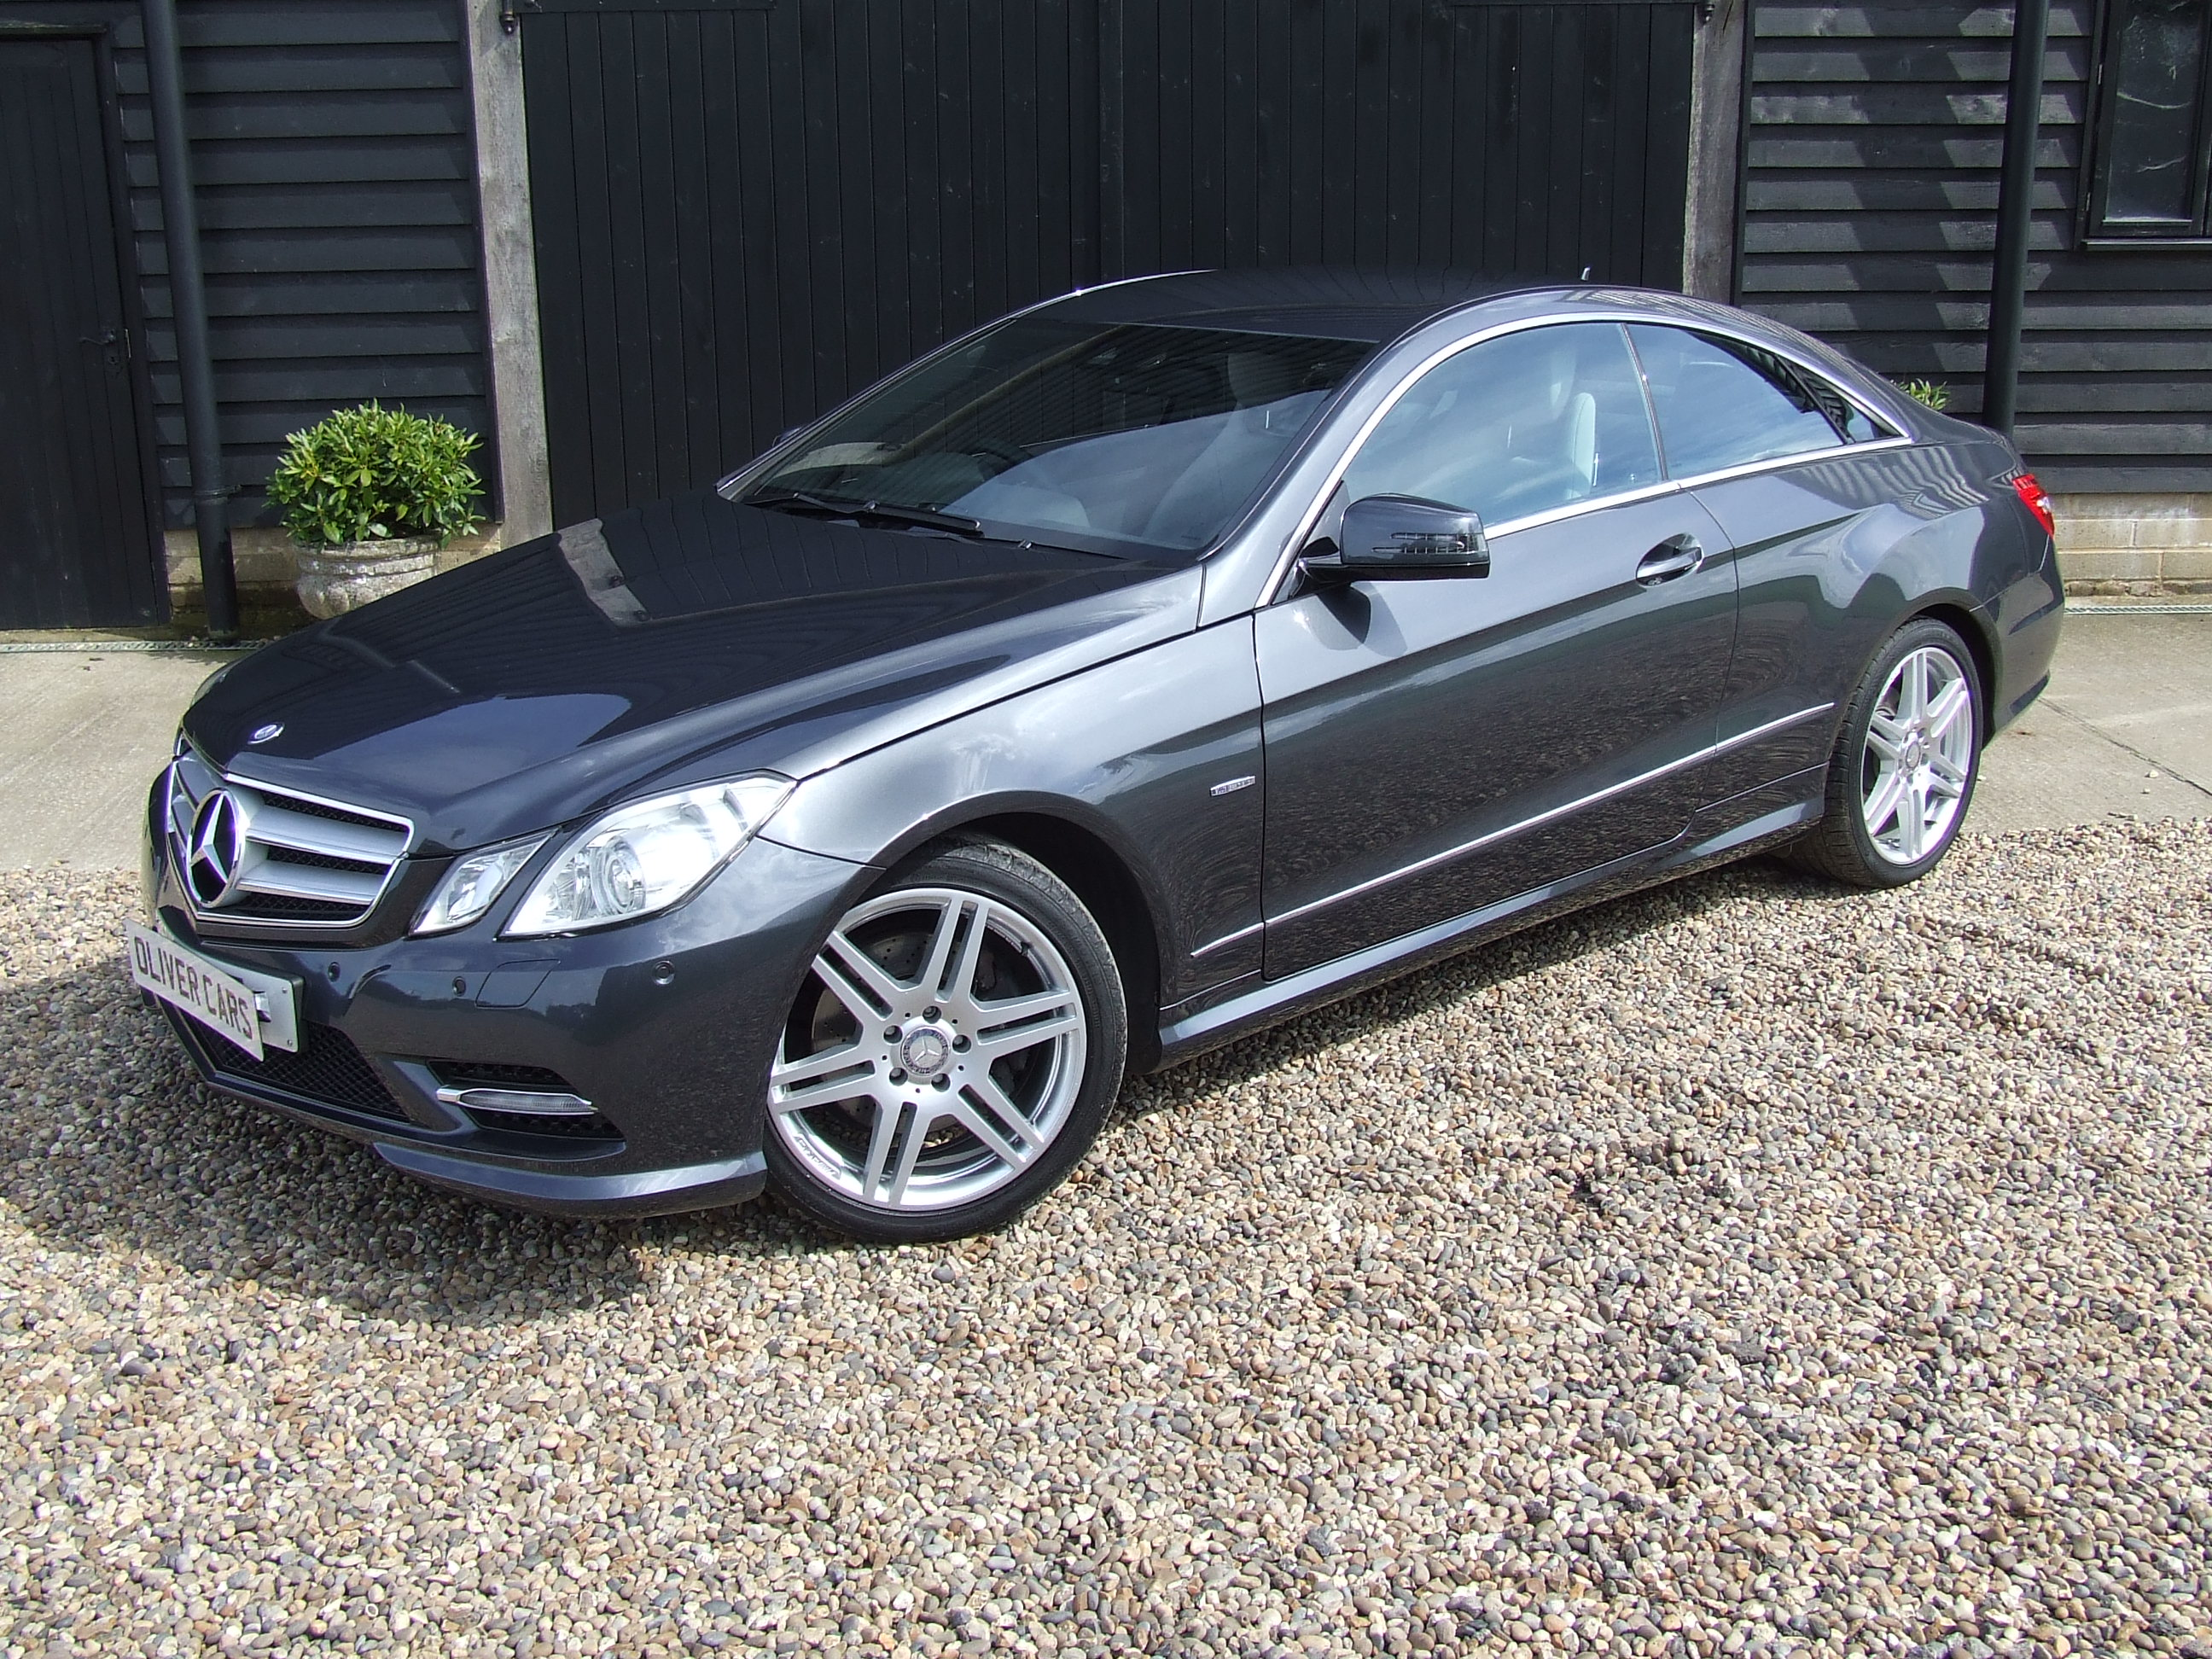 Mercedes E350 Cdi Blue Efficiency Sport 7g Tronic Coupe